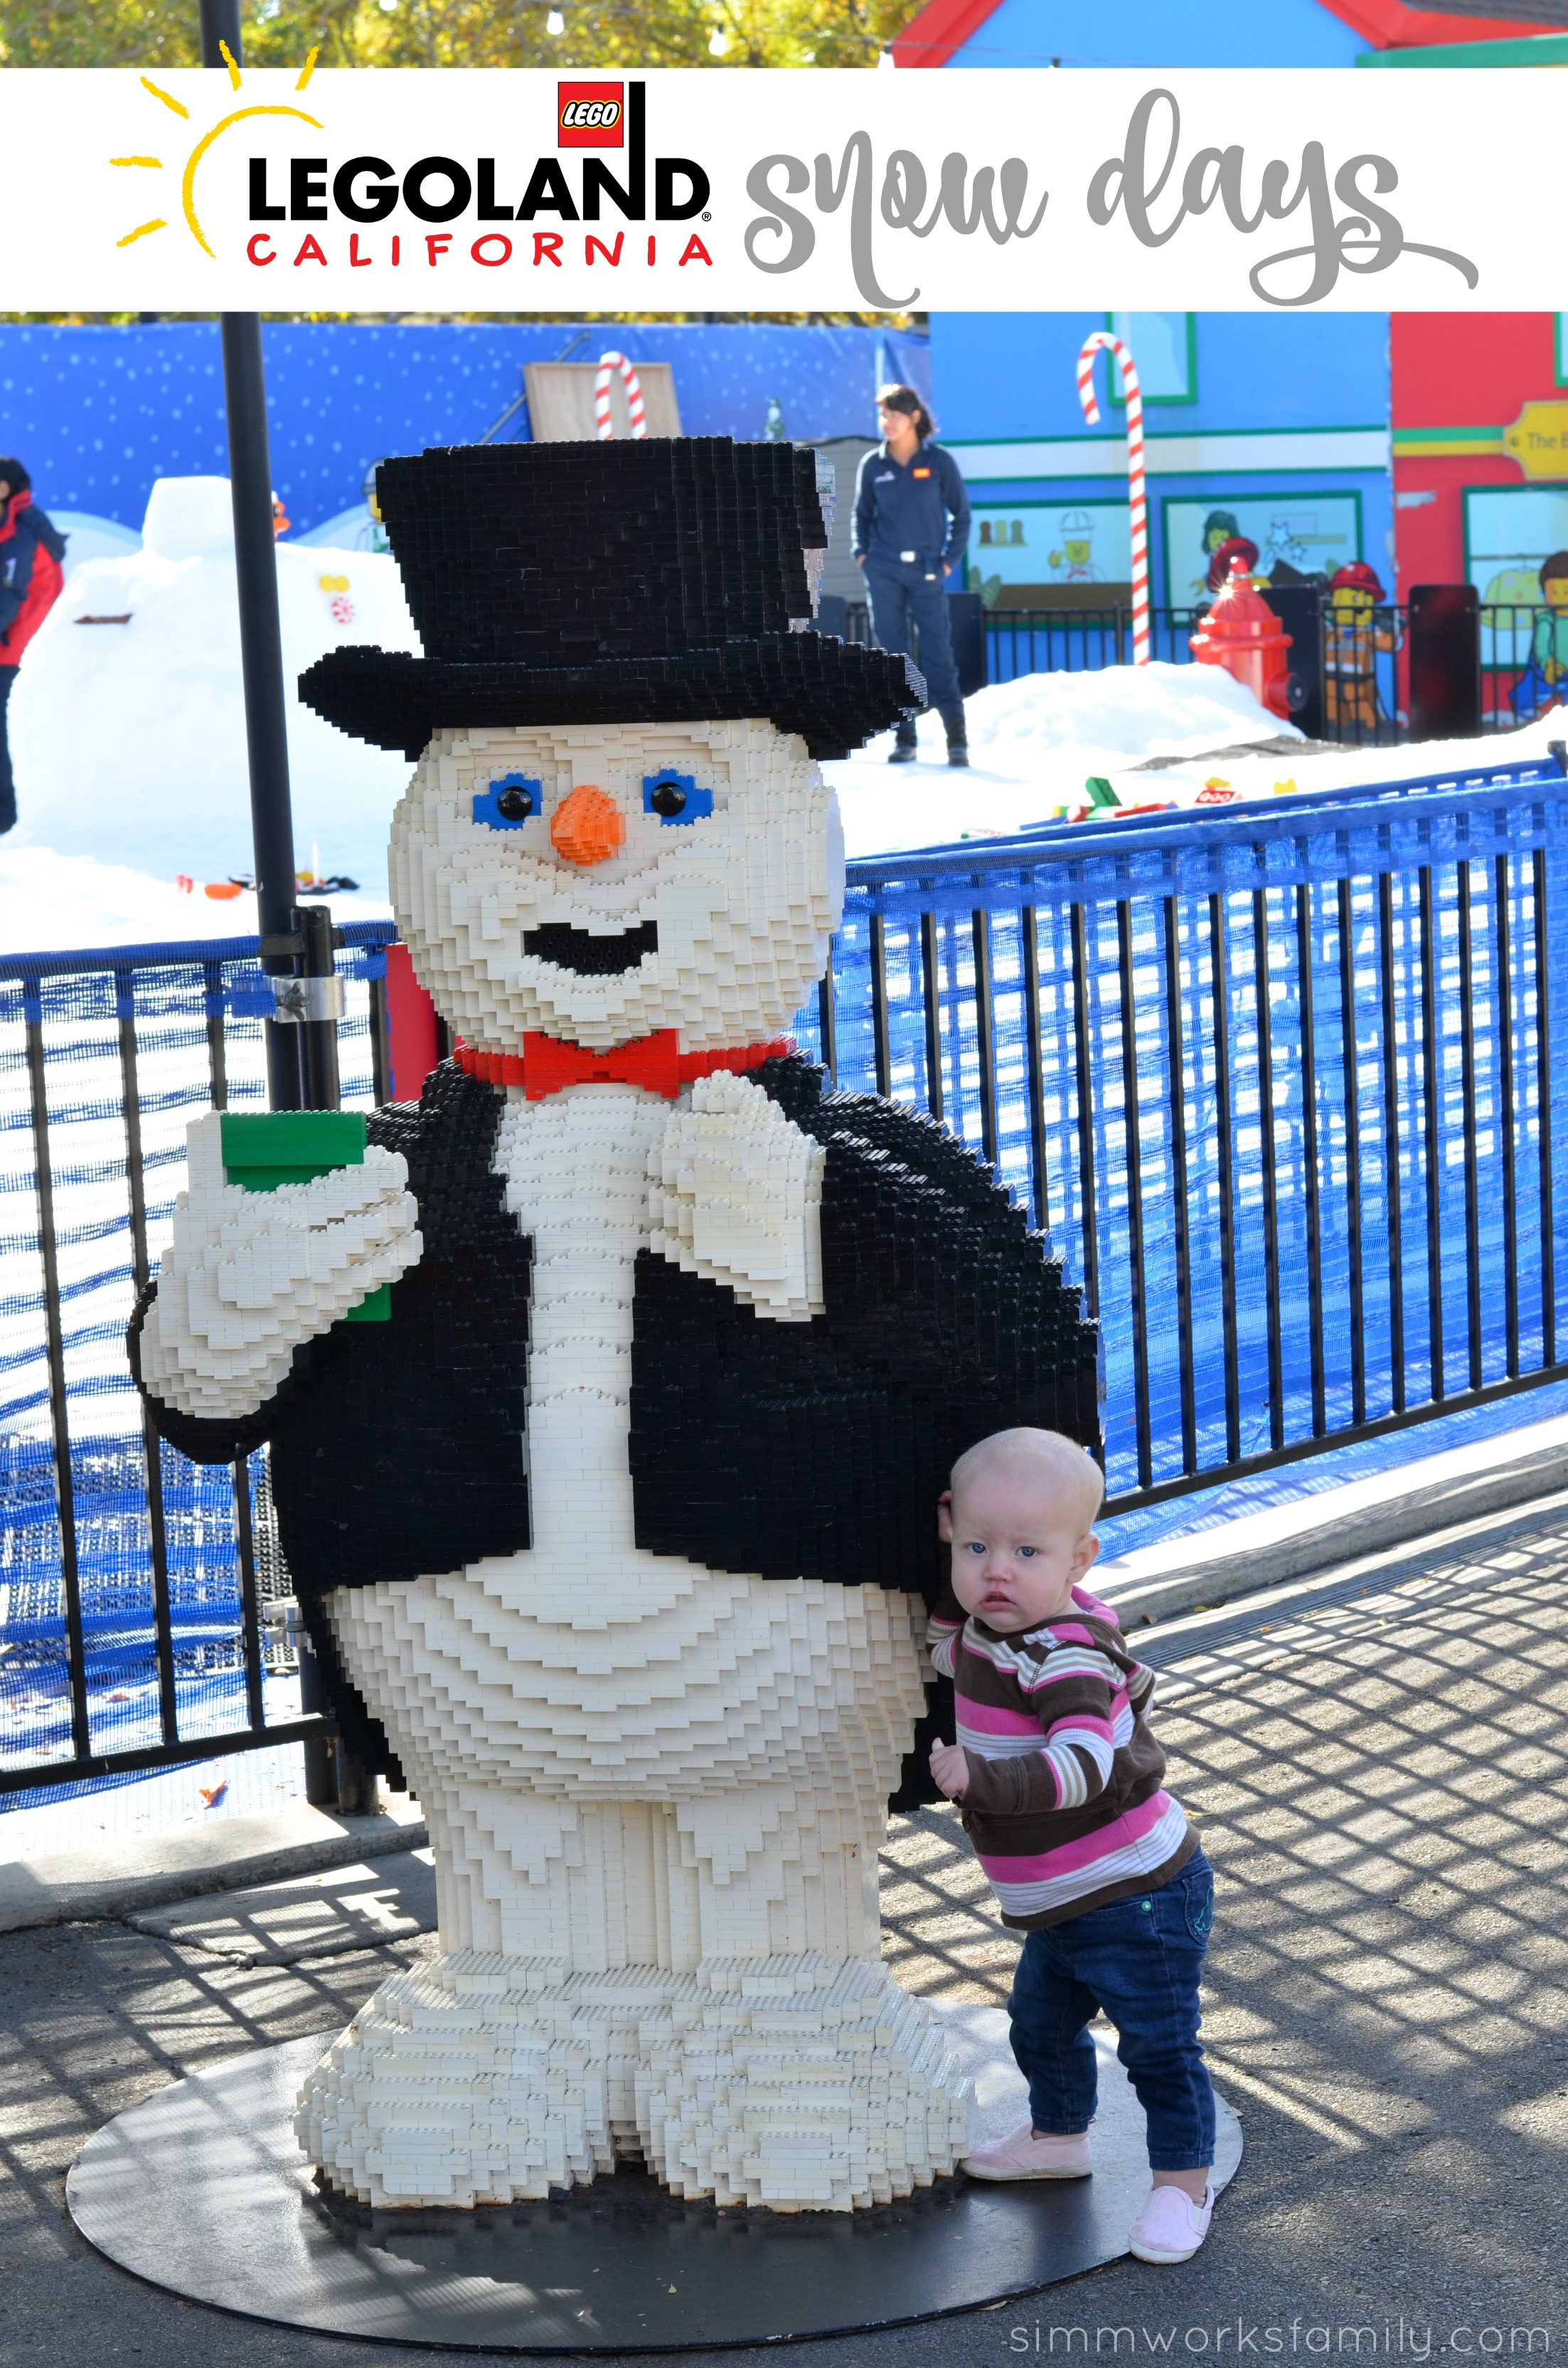 Legoland California Holiday Snow Days 2015